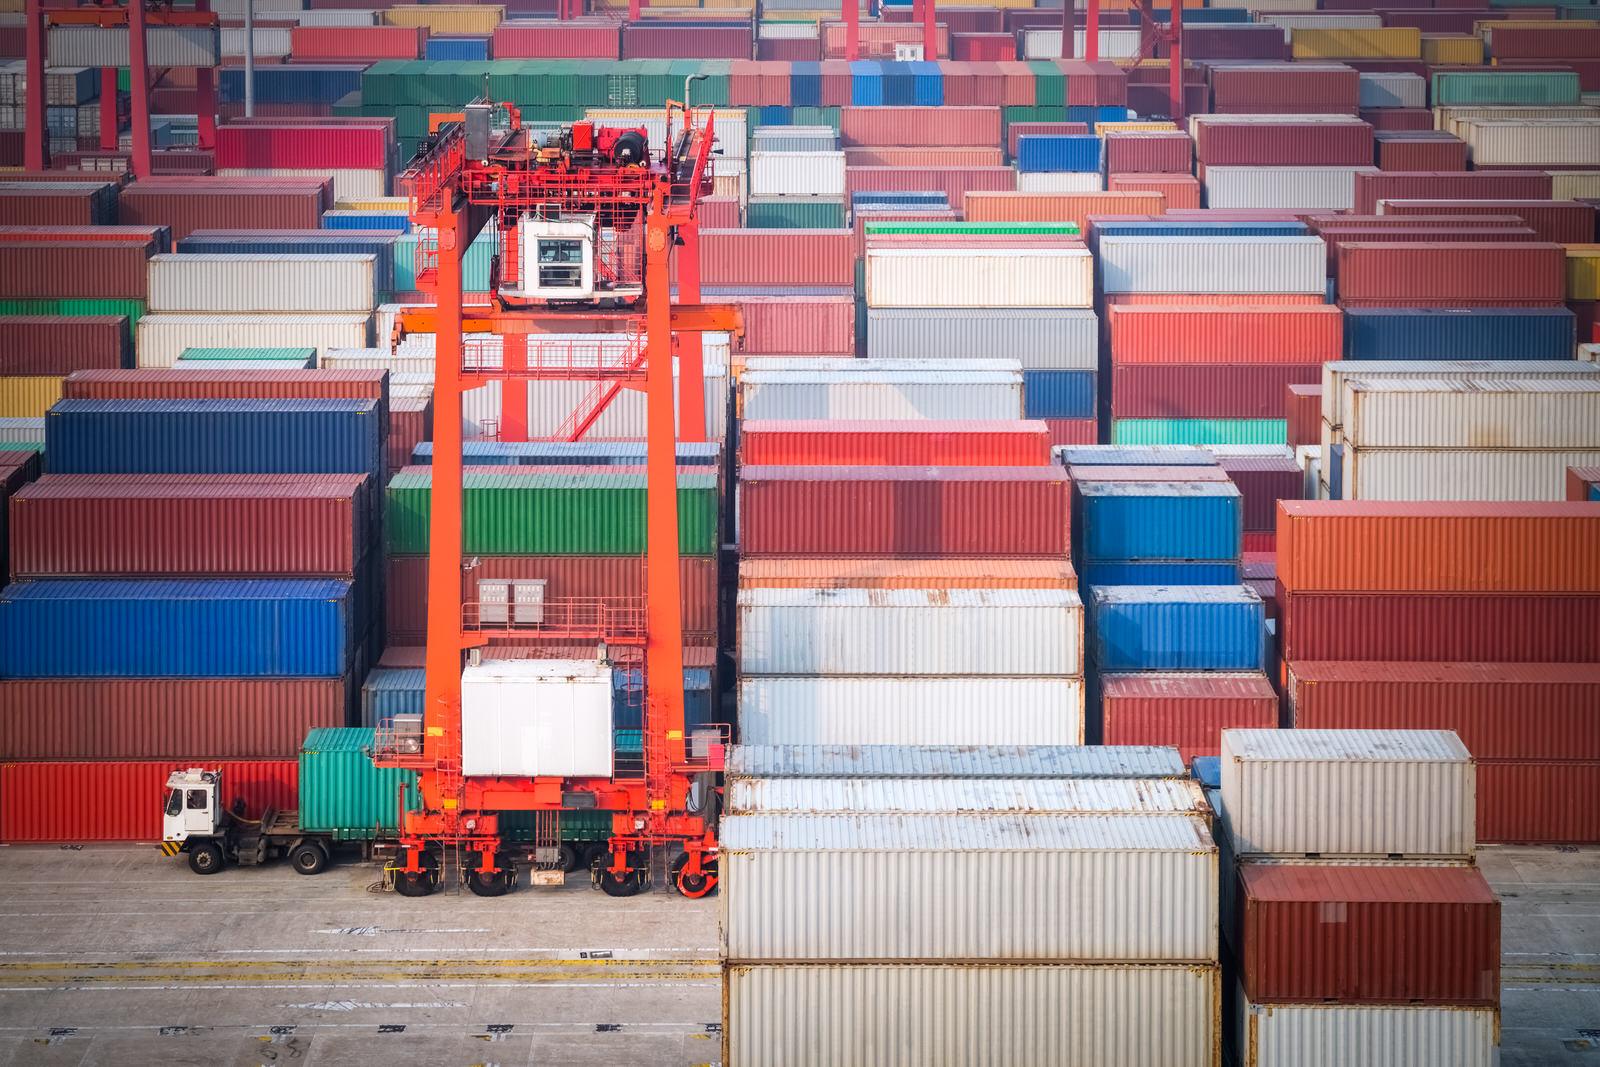 container-yard-in-shanghai-PW5MUQA.jpg